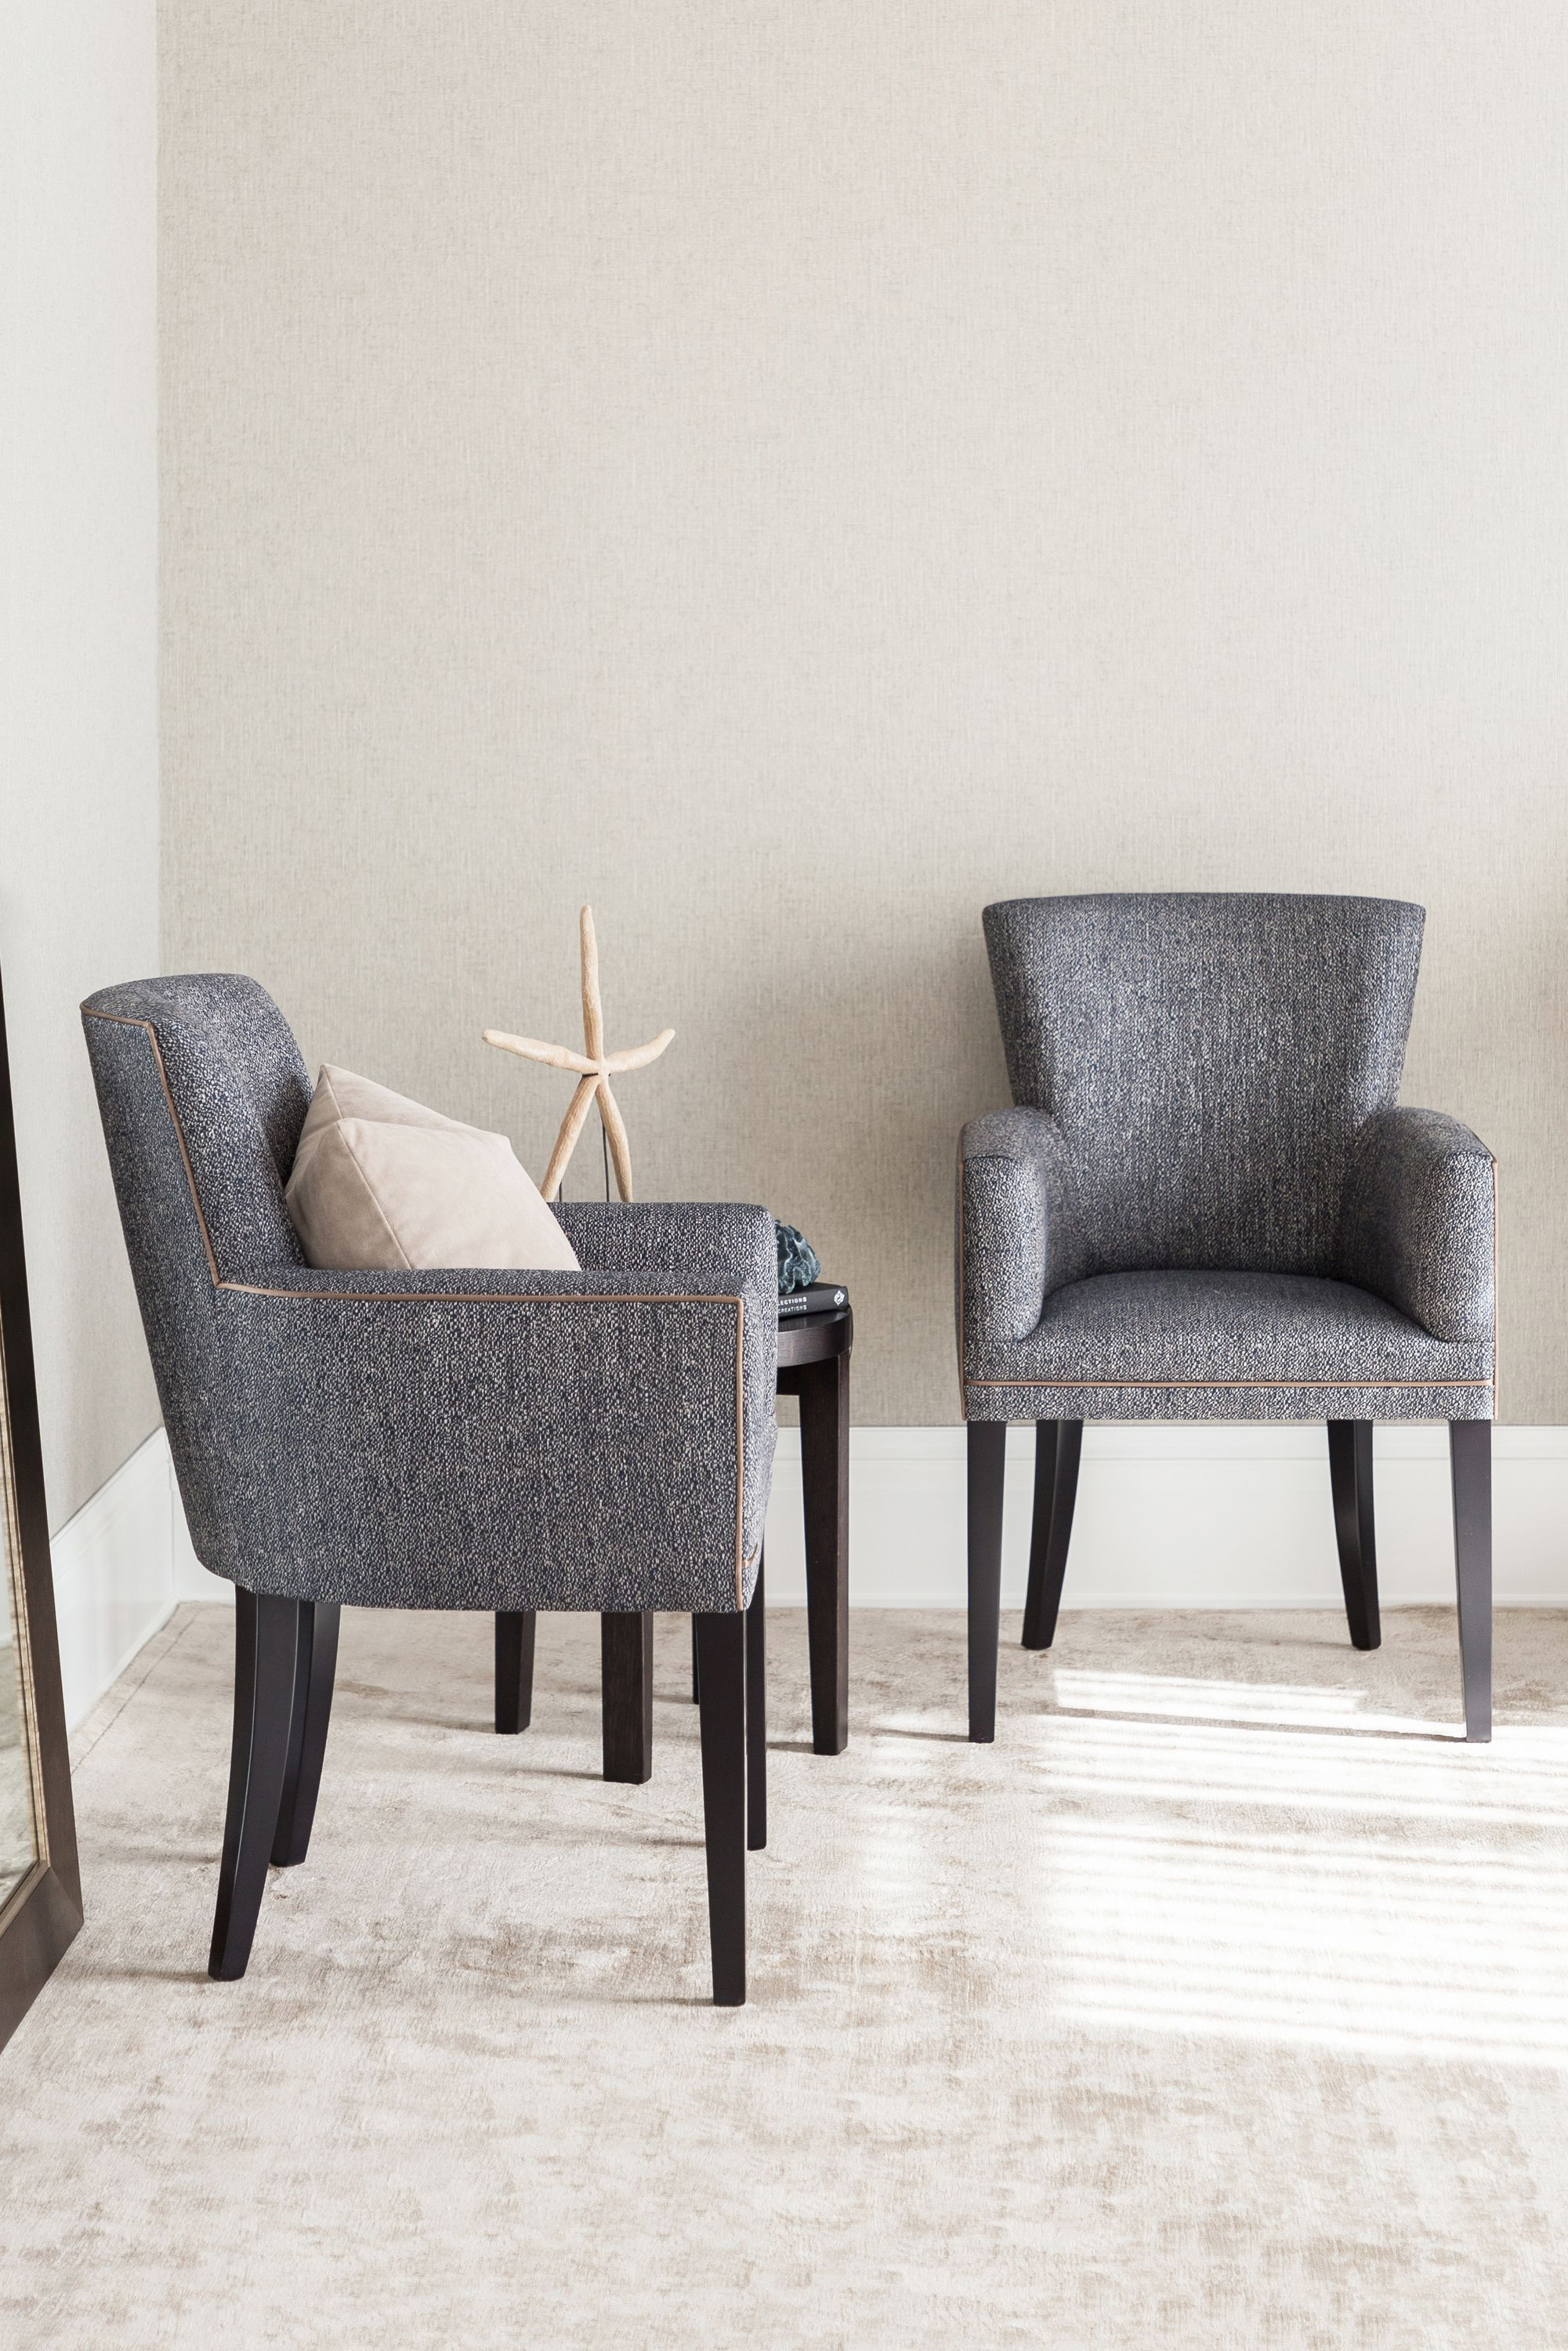 The Laura Carver dining chair is presented with a curved